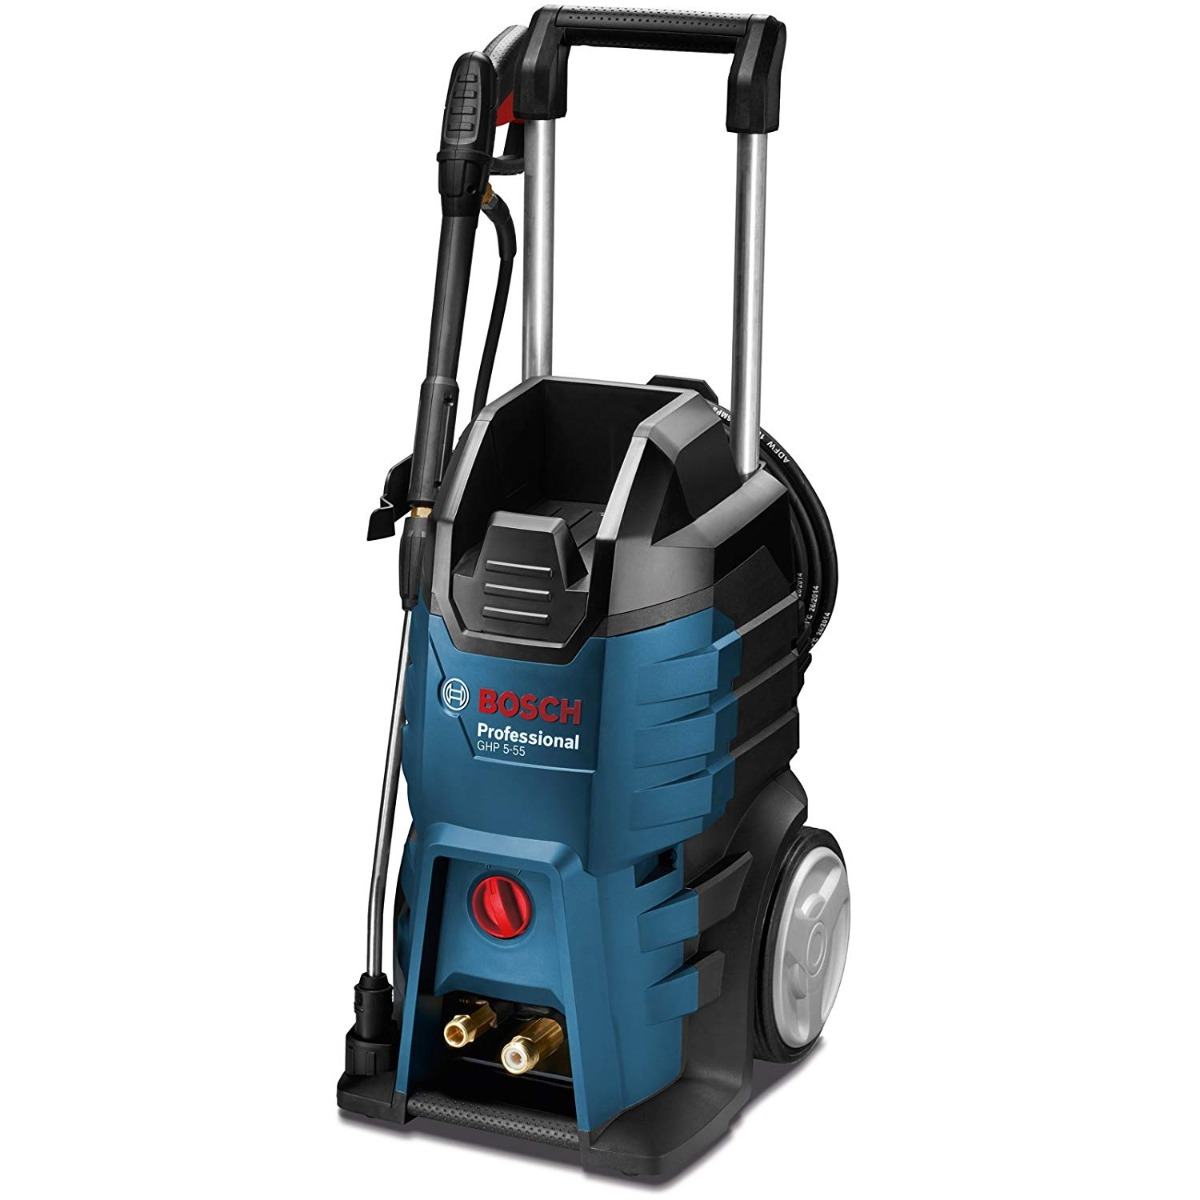 GHP5-55 Professional High-pressure Washer